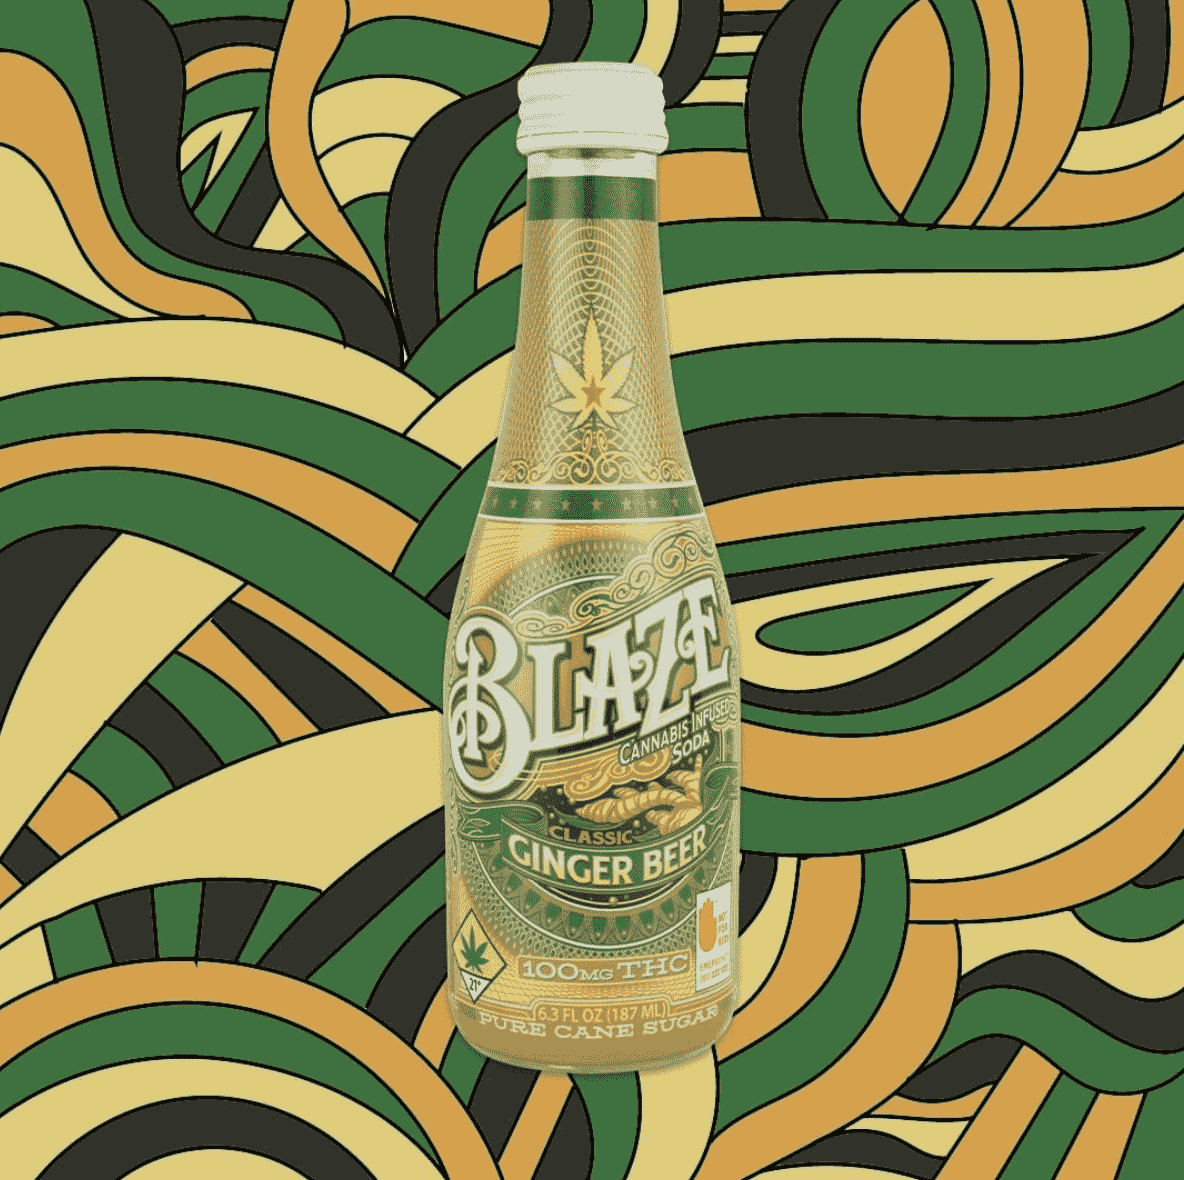 Cannabis Infused Ginger Beer by Blaze Sodas: The Winter Drink For Cannabis Lovers